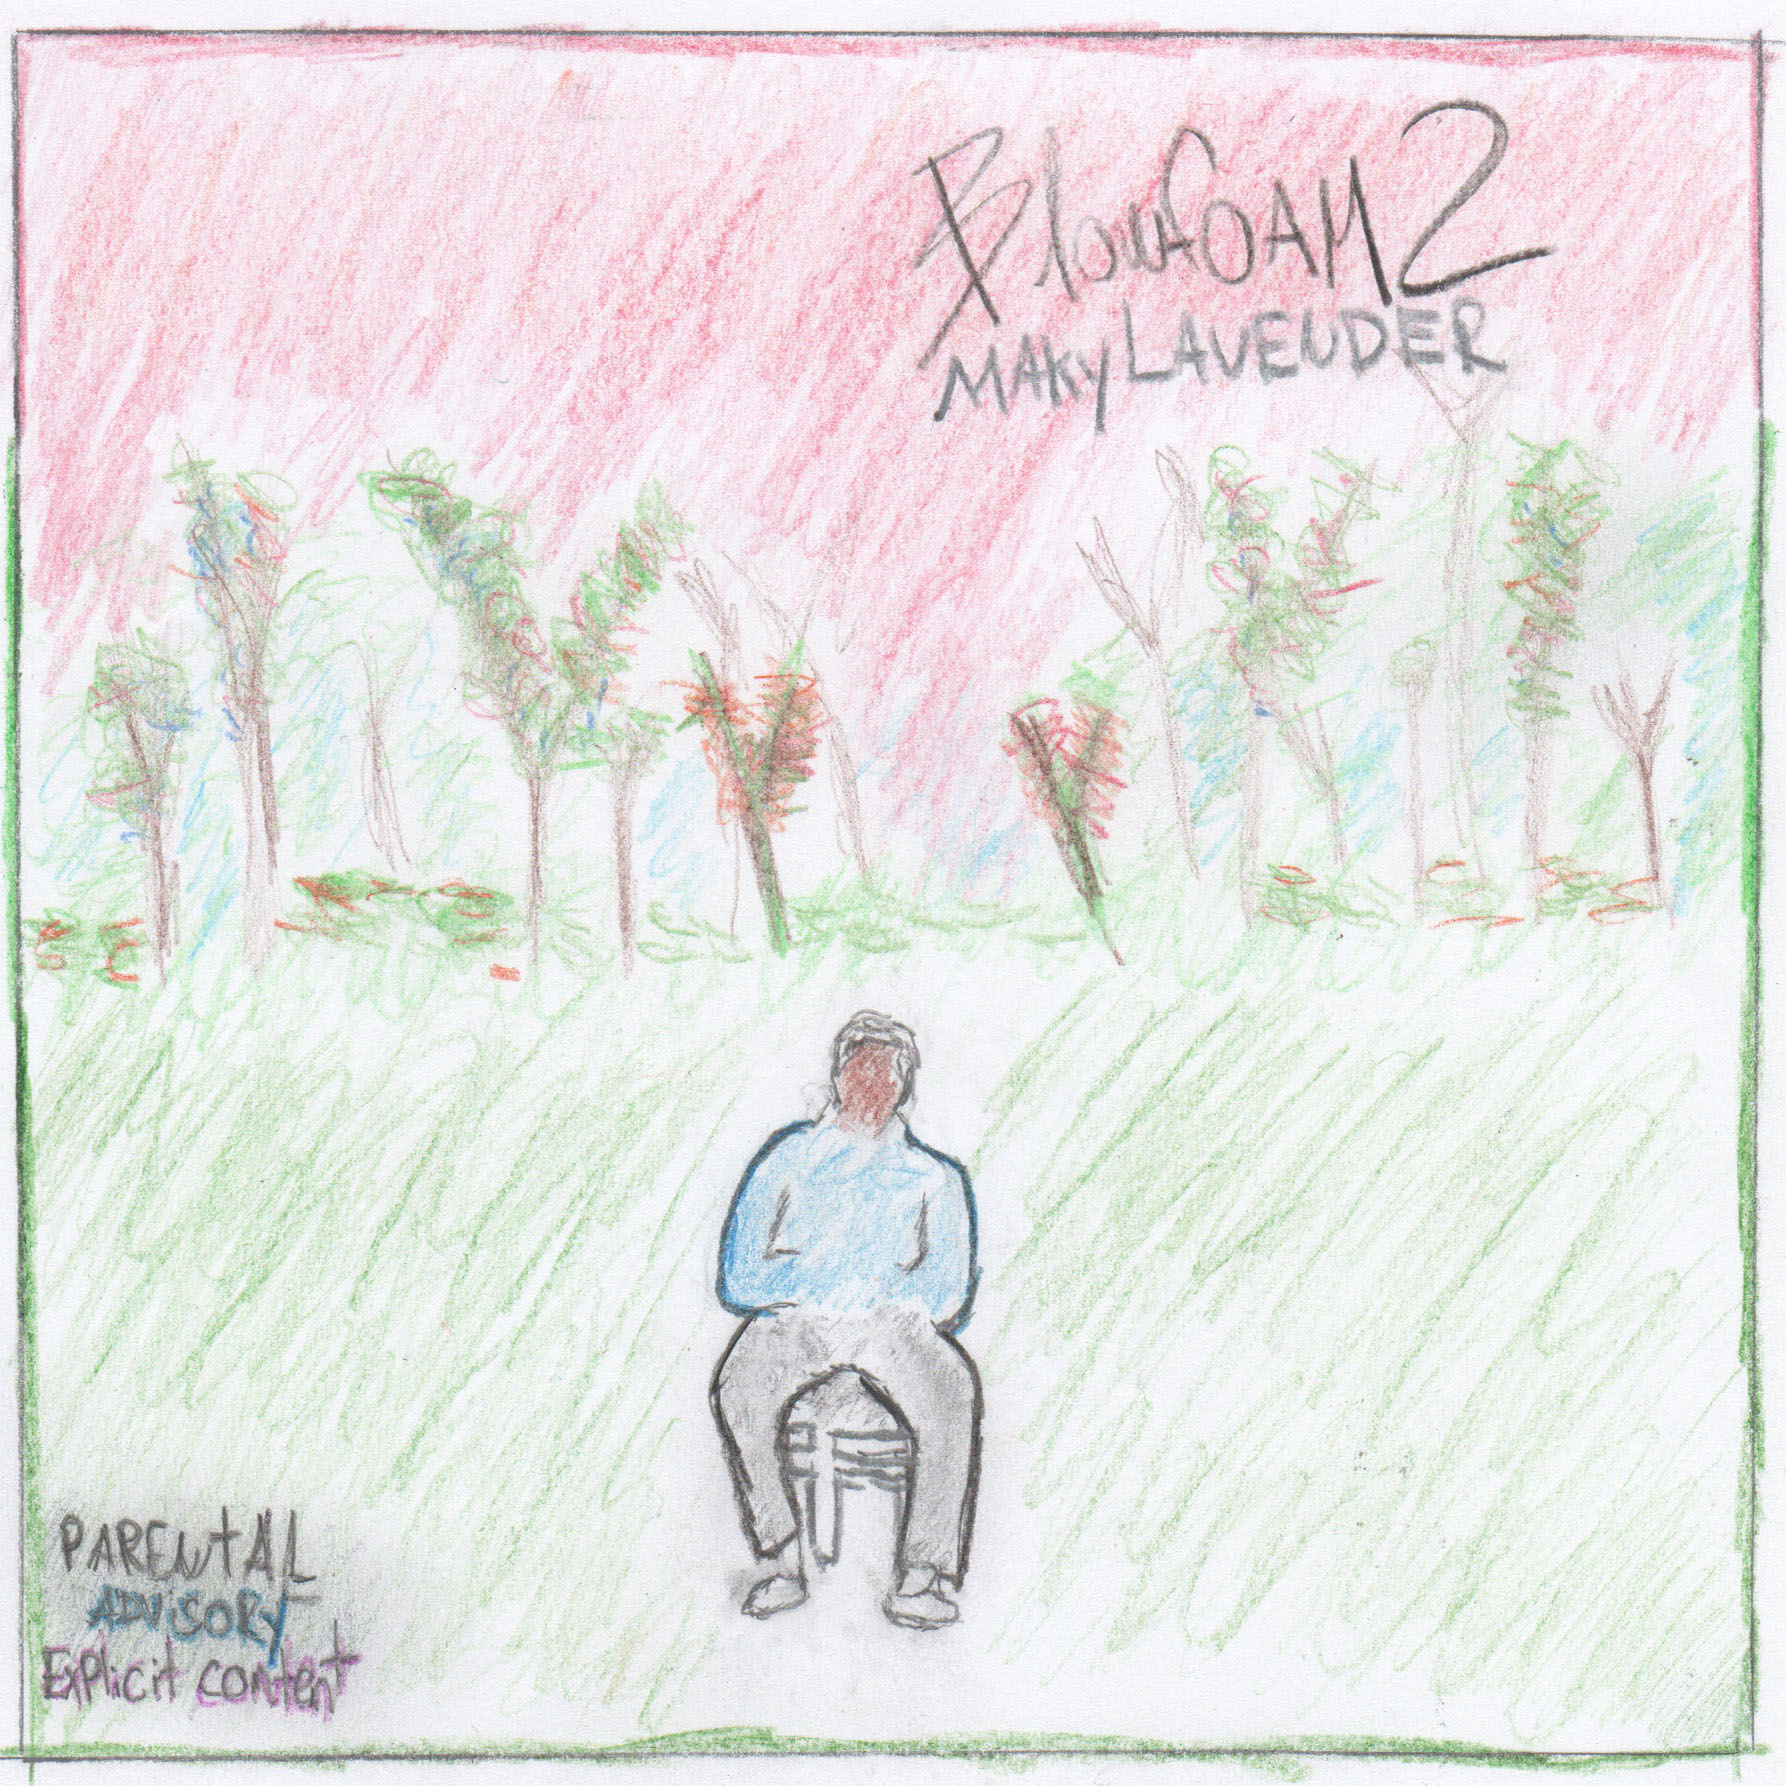 BLOWFOAM2 DRAWN COVER.jpg